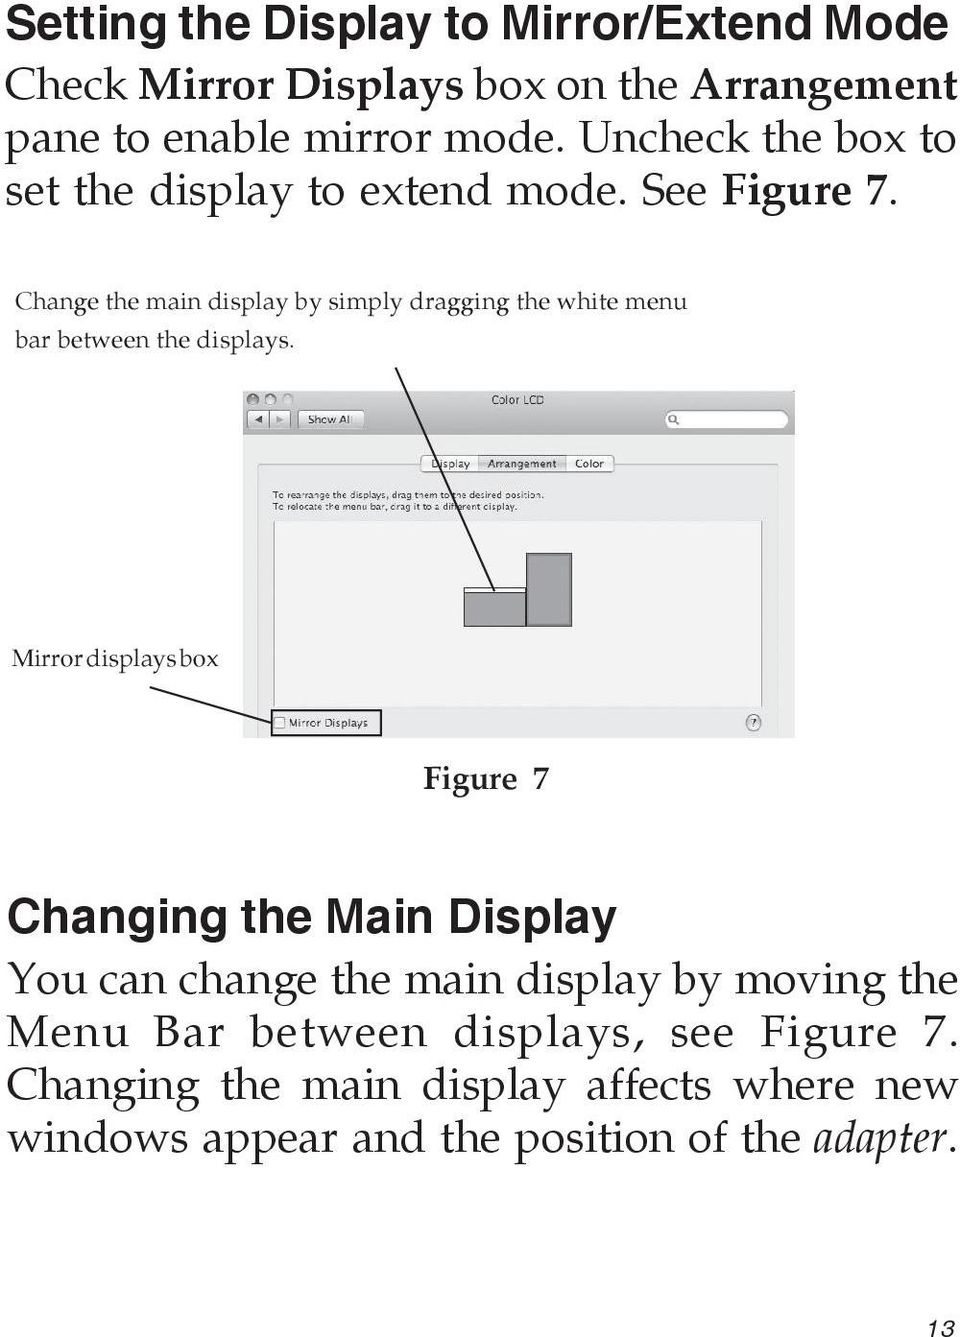 Change the main display by simply dragging the white menu bar between the displays.